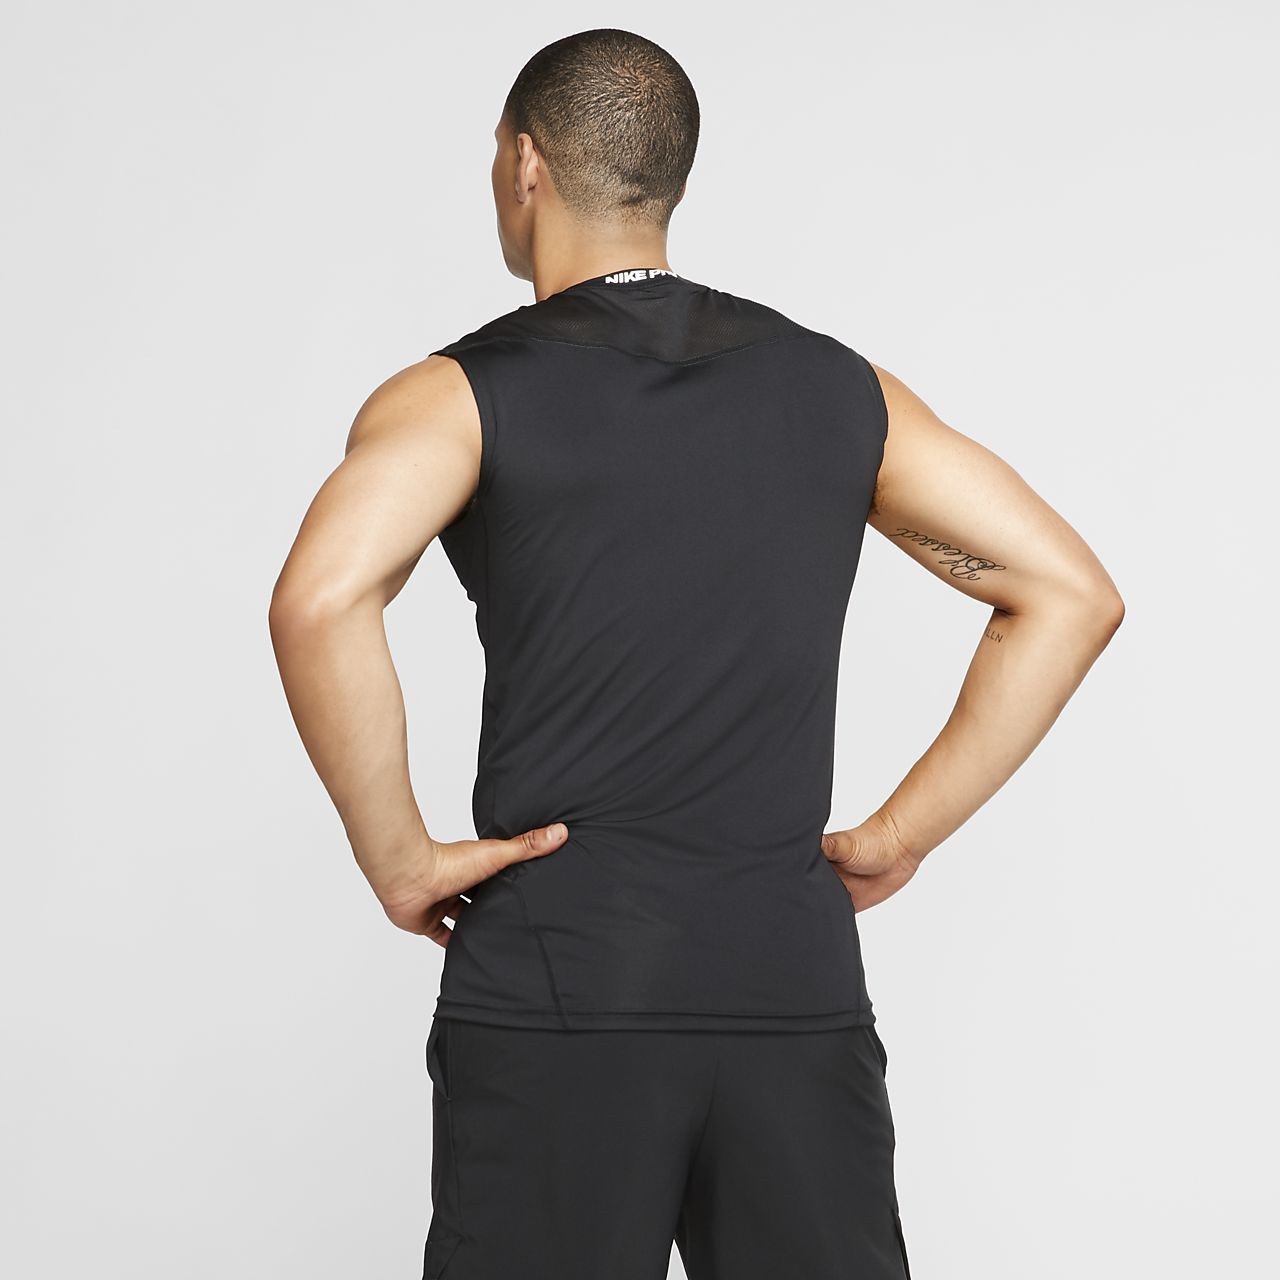 473215062095d Nike Pro Men s Sleeveless Fitted Top. Nike.com